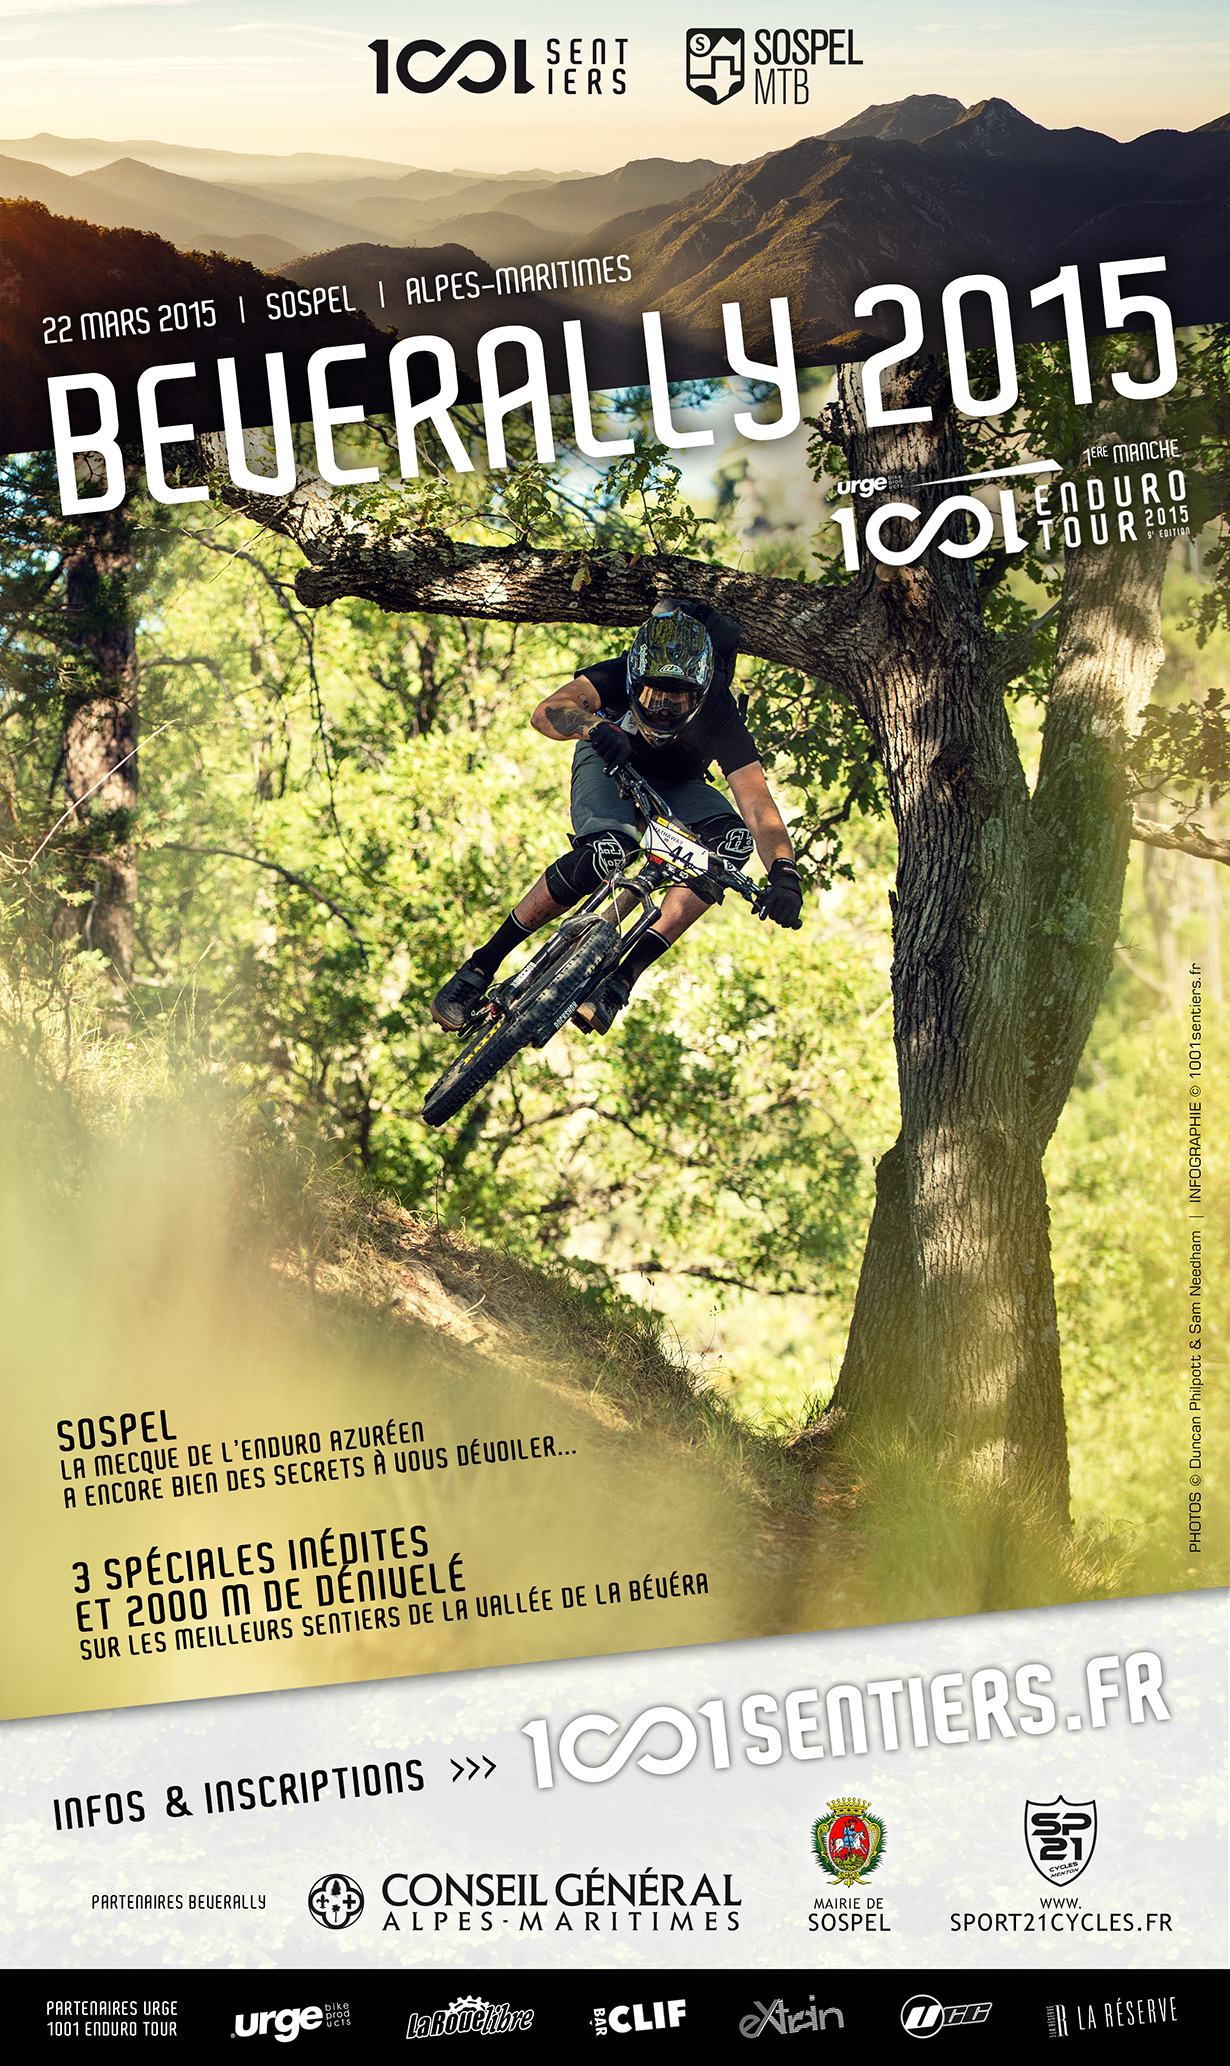 Affiche Beverally 2015 urge 1001 enduro tour